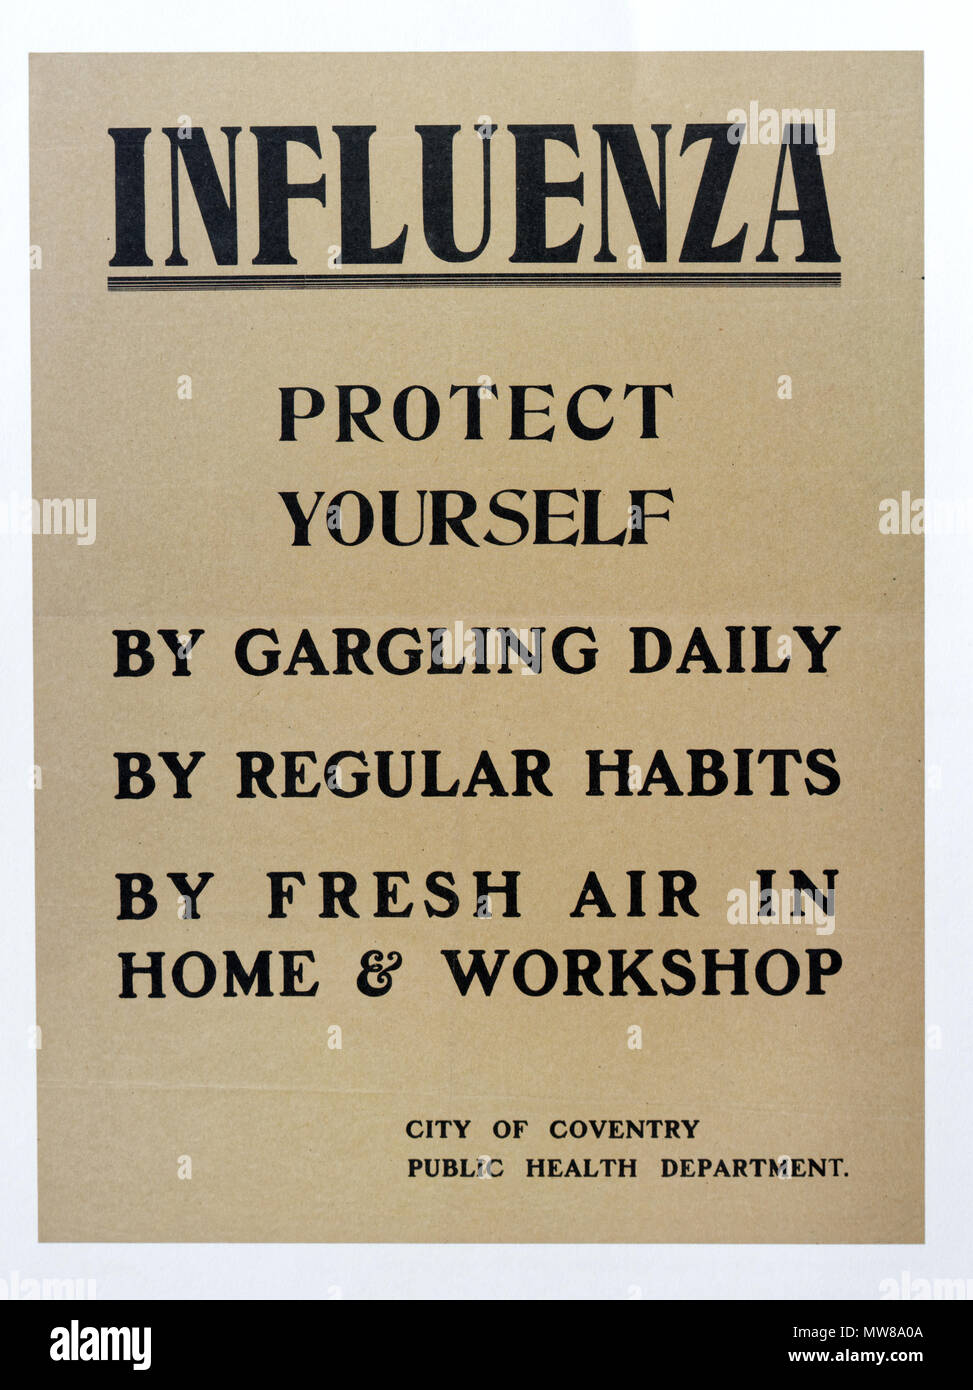 A wartime poster with advice on protection against influenza - Stock Image